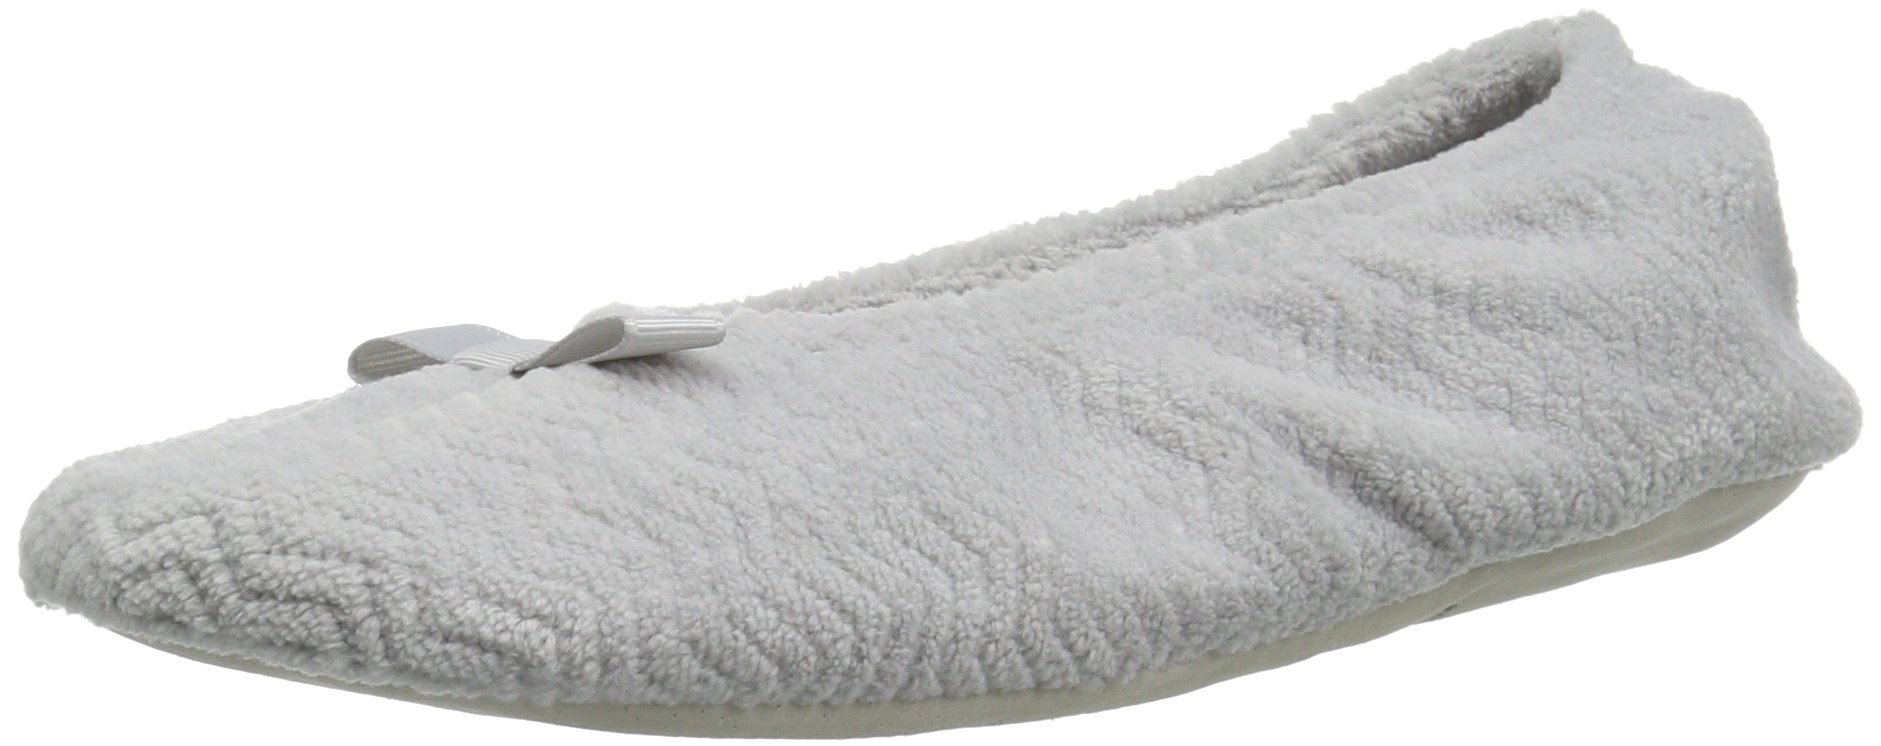 ISOTONER Women's Chevron Microterry Ballerina House Slipper with Moisture Wicking and Fabric Sole for Comfort, Light Grey, Small/5-6 M US